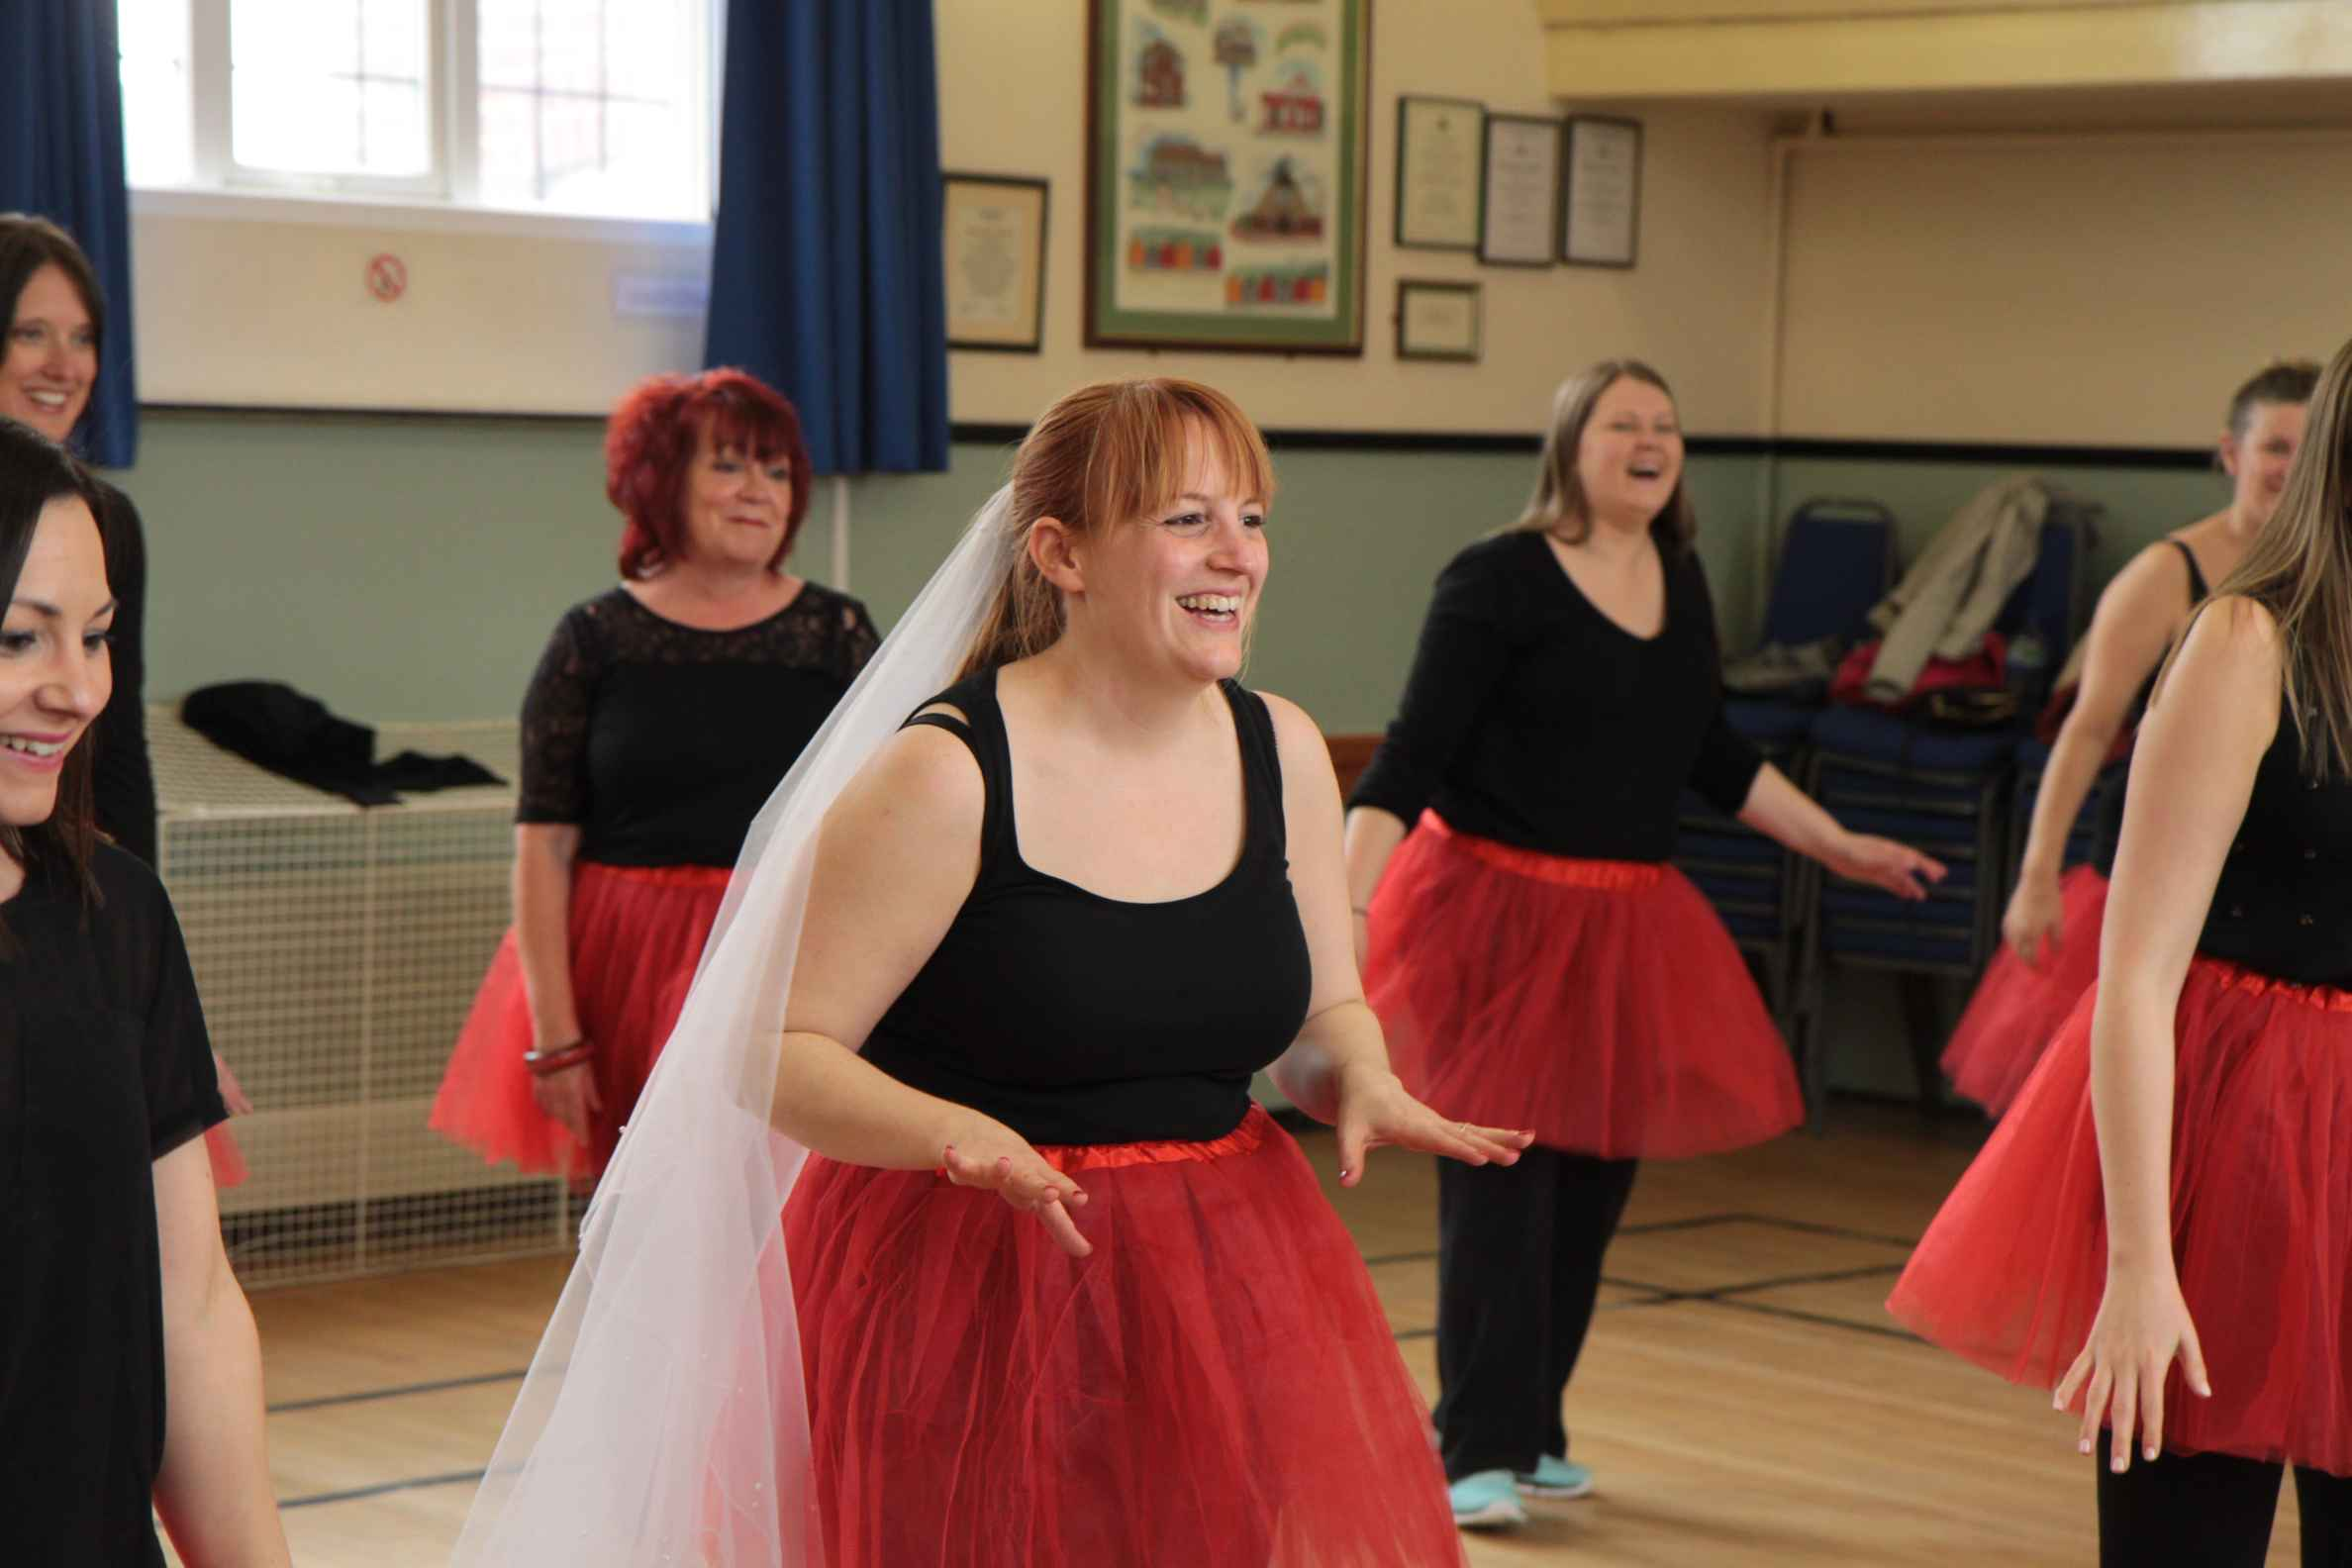 Bride to be and her hens at a musical themed hen dance party